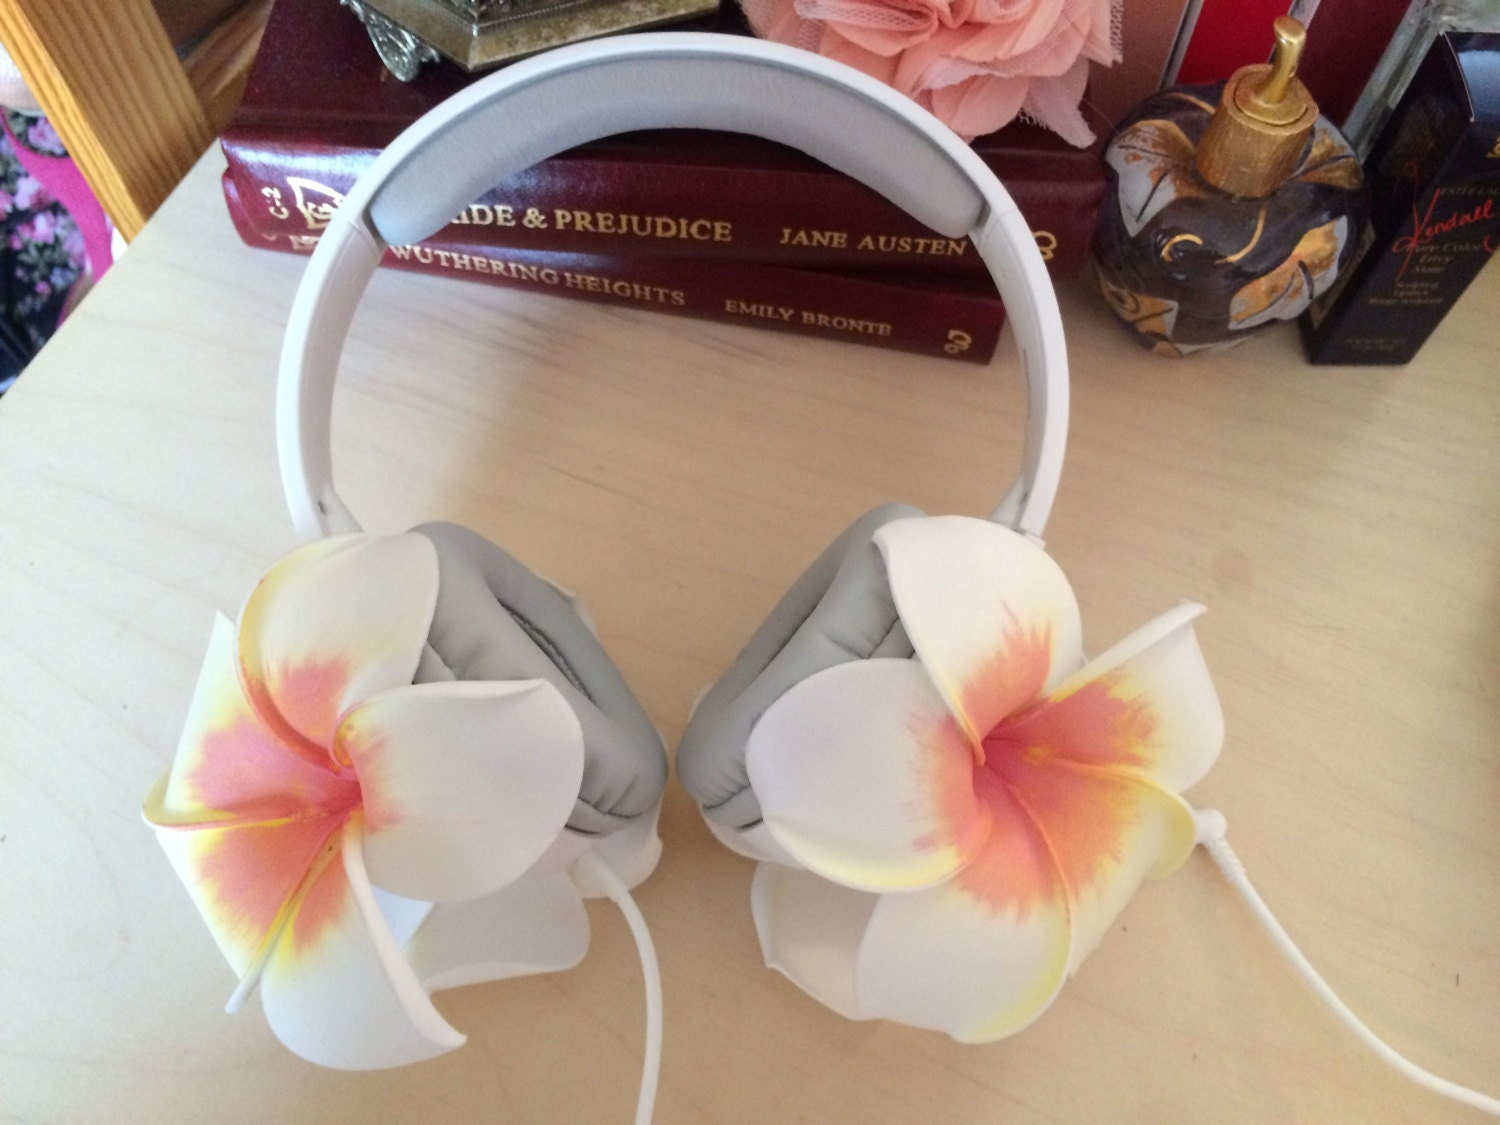 Lana Del Rey Flower Floral Headphones From Music To Watch Boys